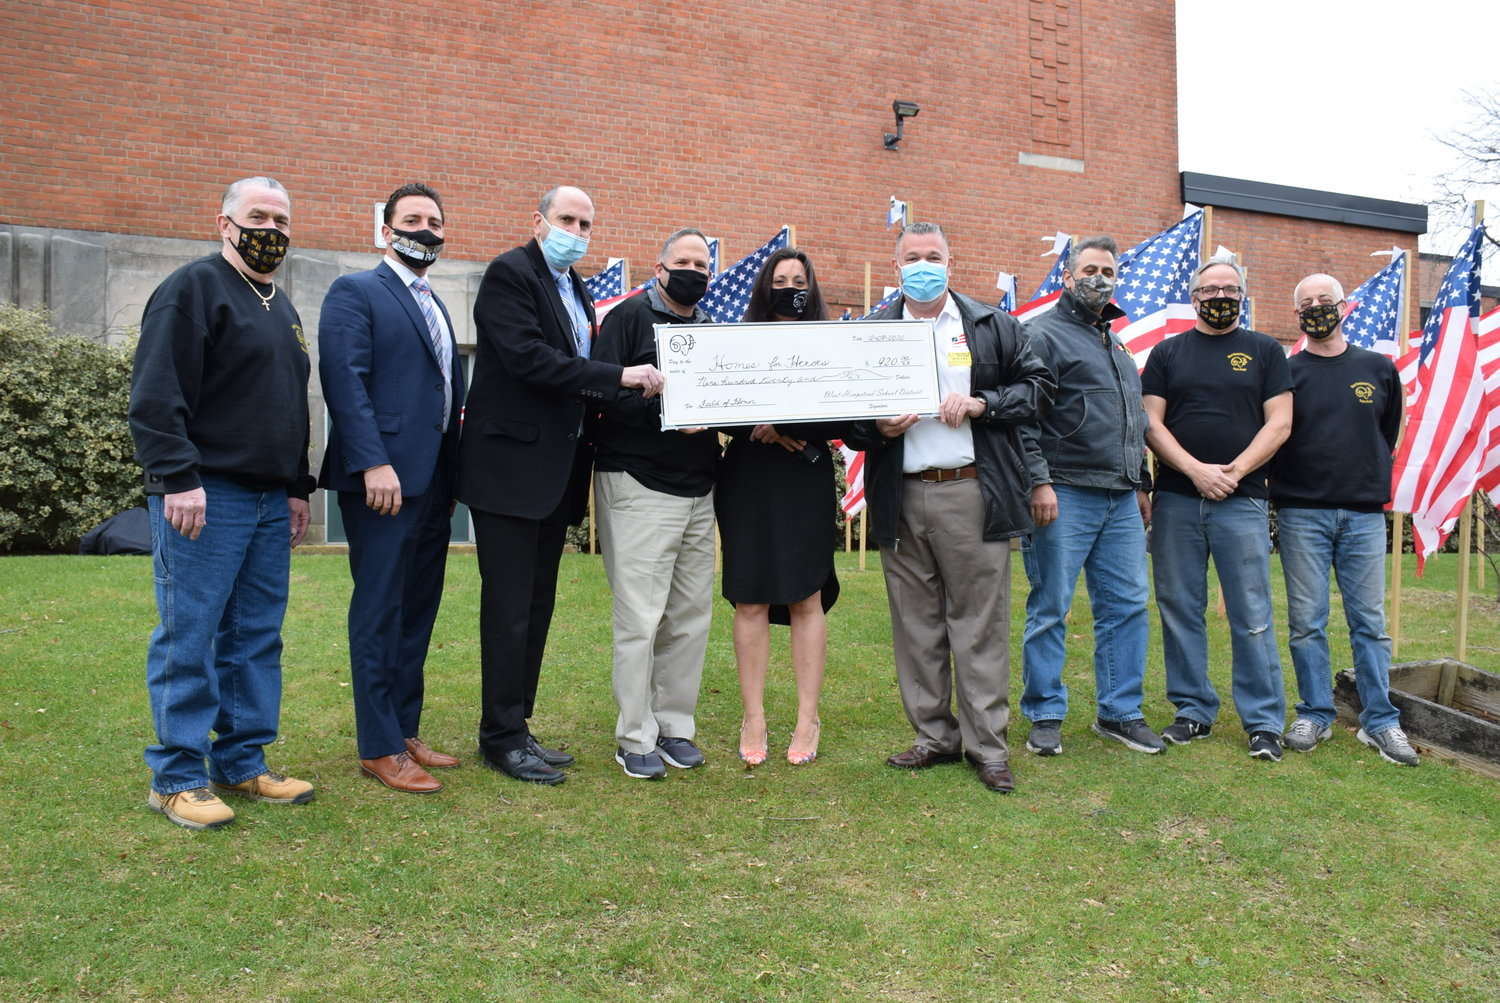 West Hempstead High School donated $920 raised through their Field of Honor to Homes for Heroes on Dec. 8.